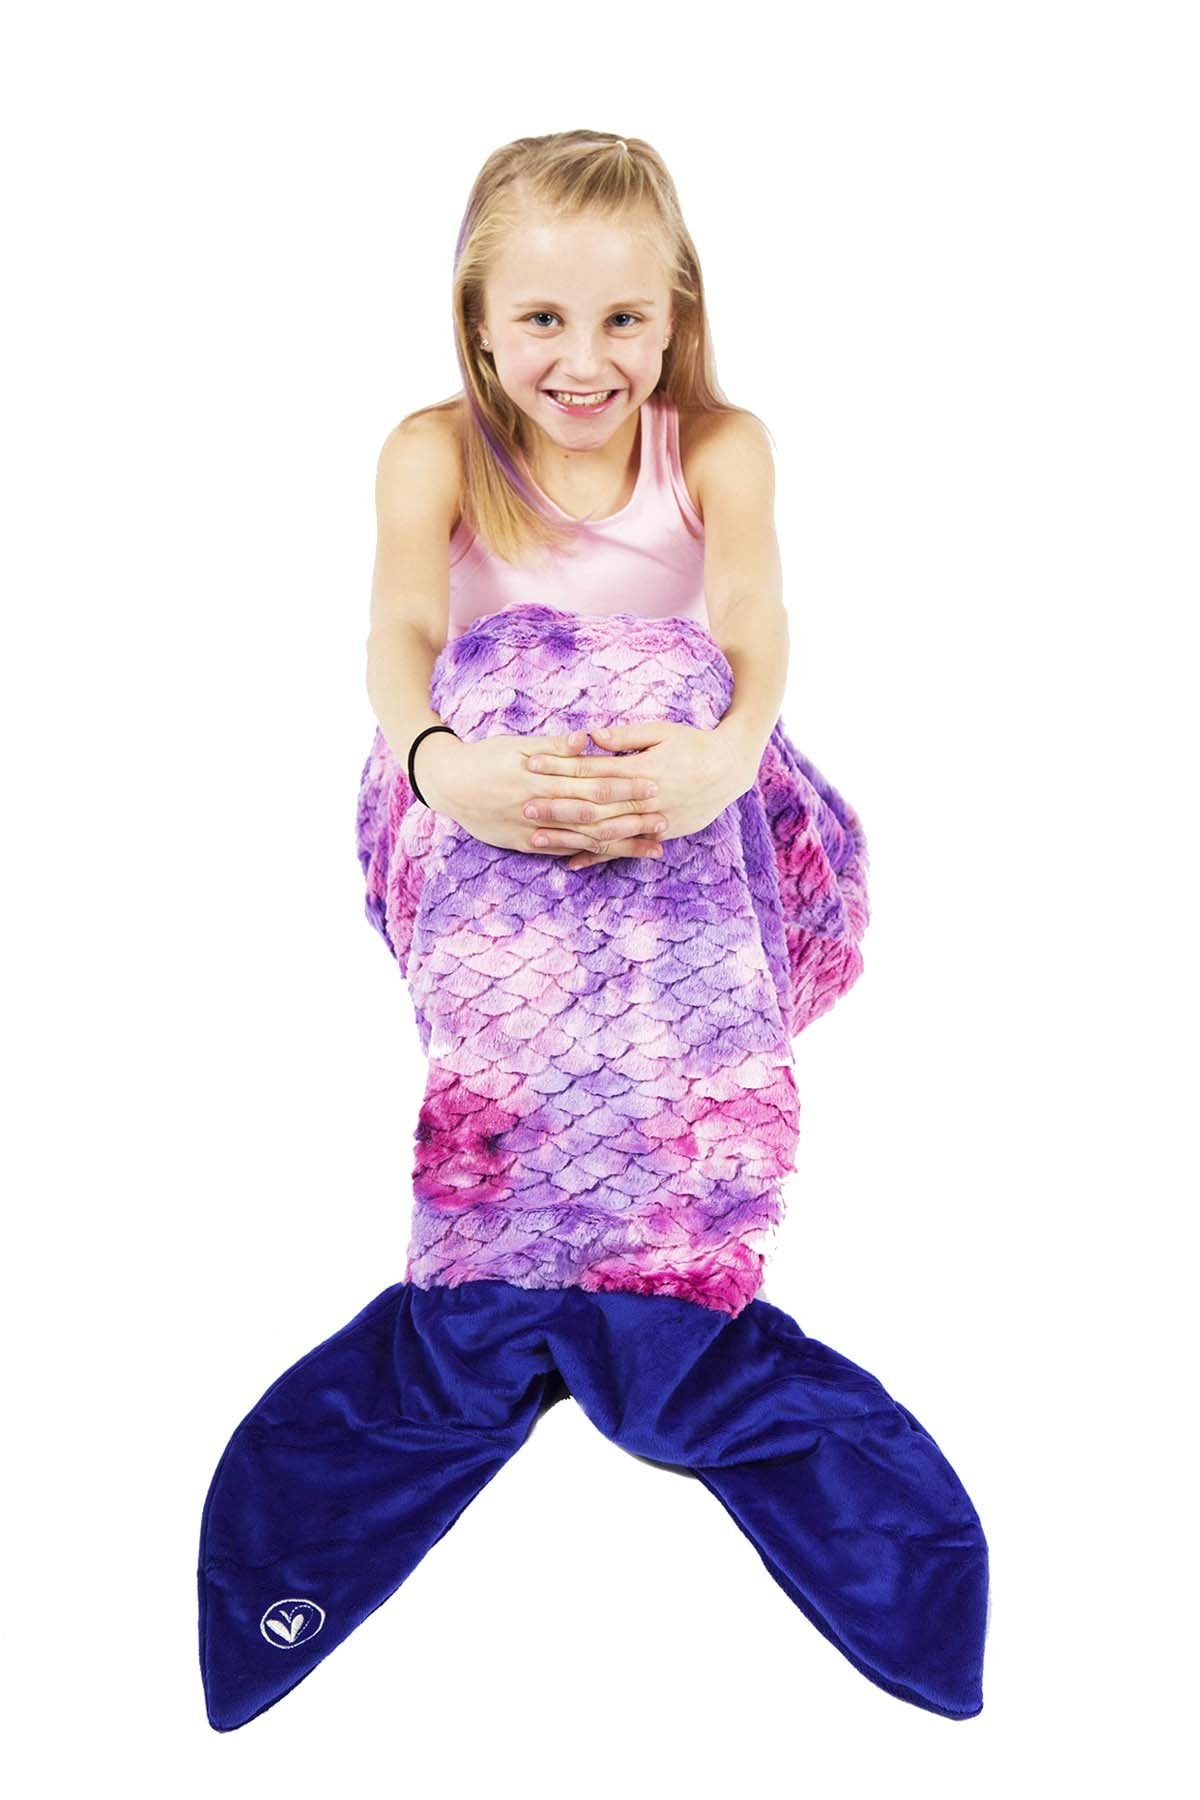 blonde girl smiling and sitting down in limeapple's purple tie dye mermaid tail sleeping bag